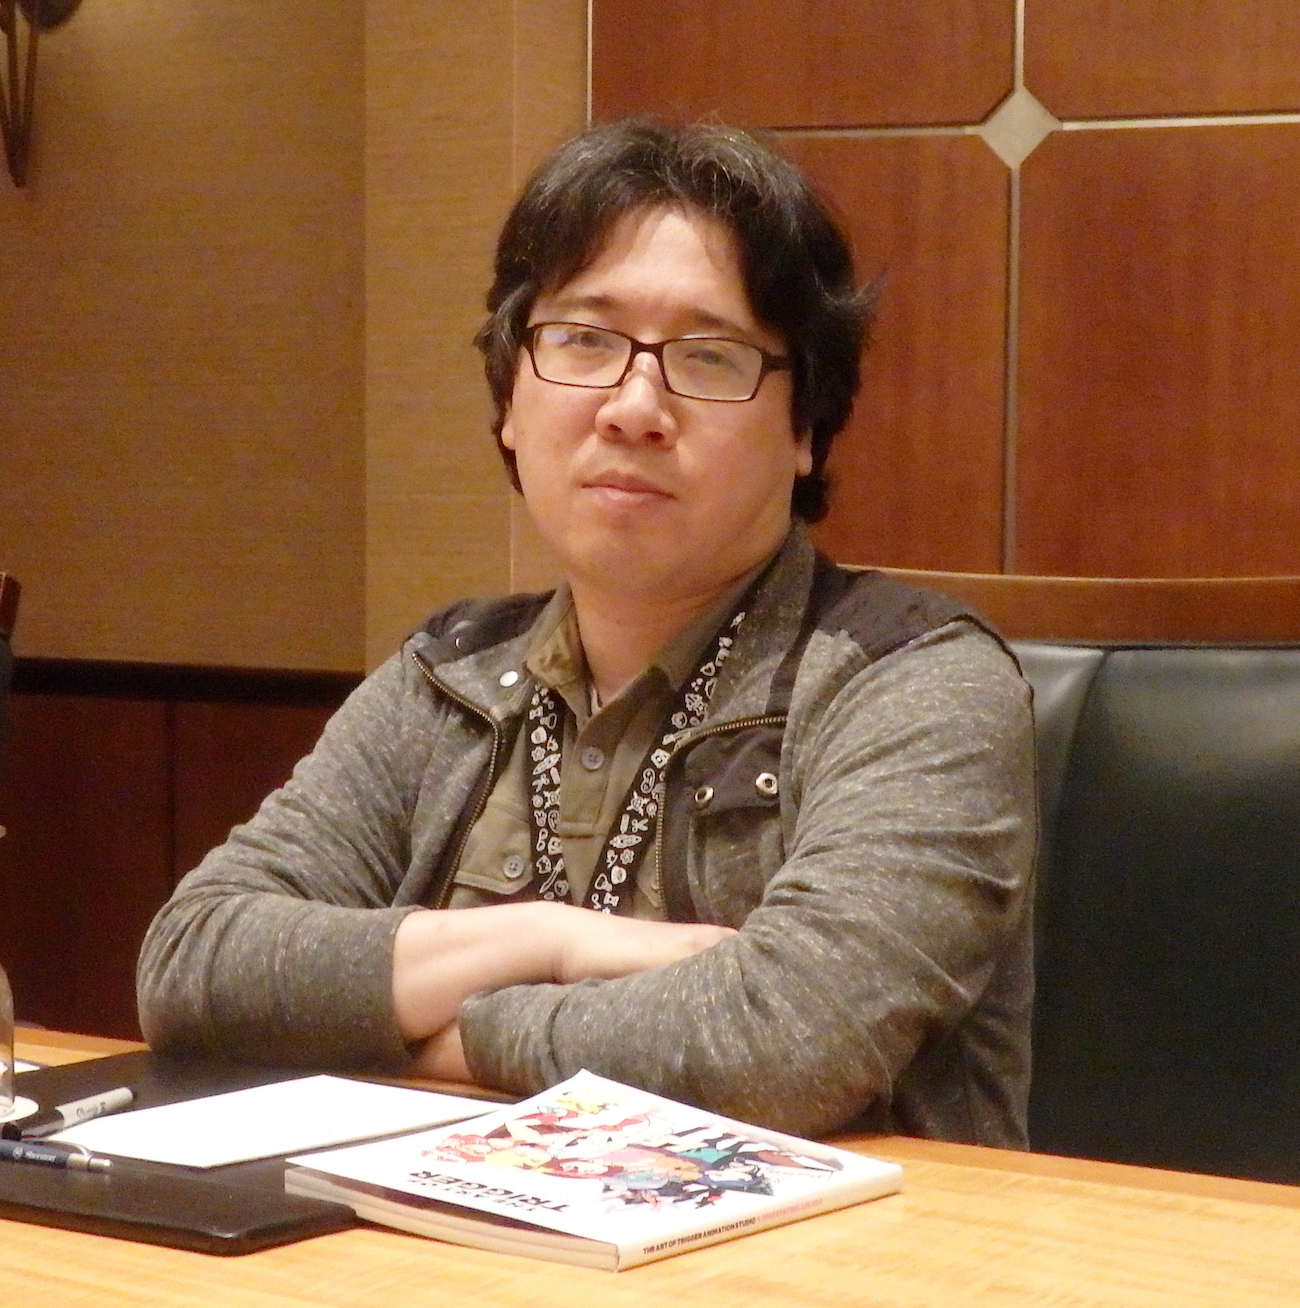 Yoshinari sitting at a table with his arms crossed.